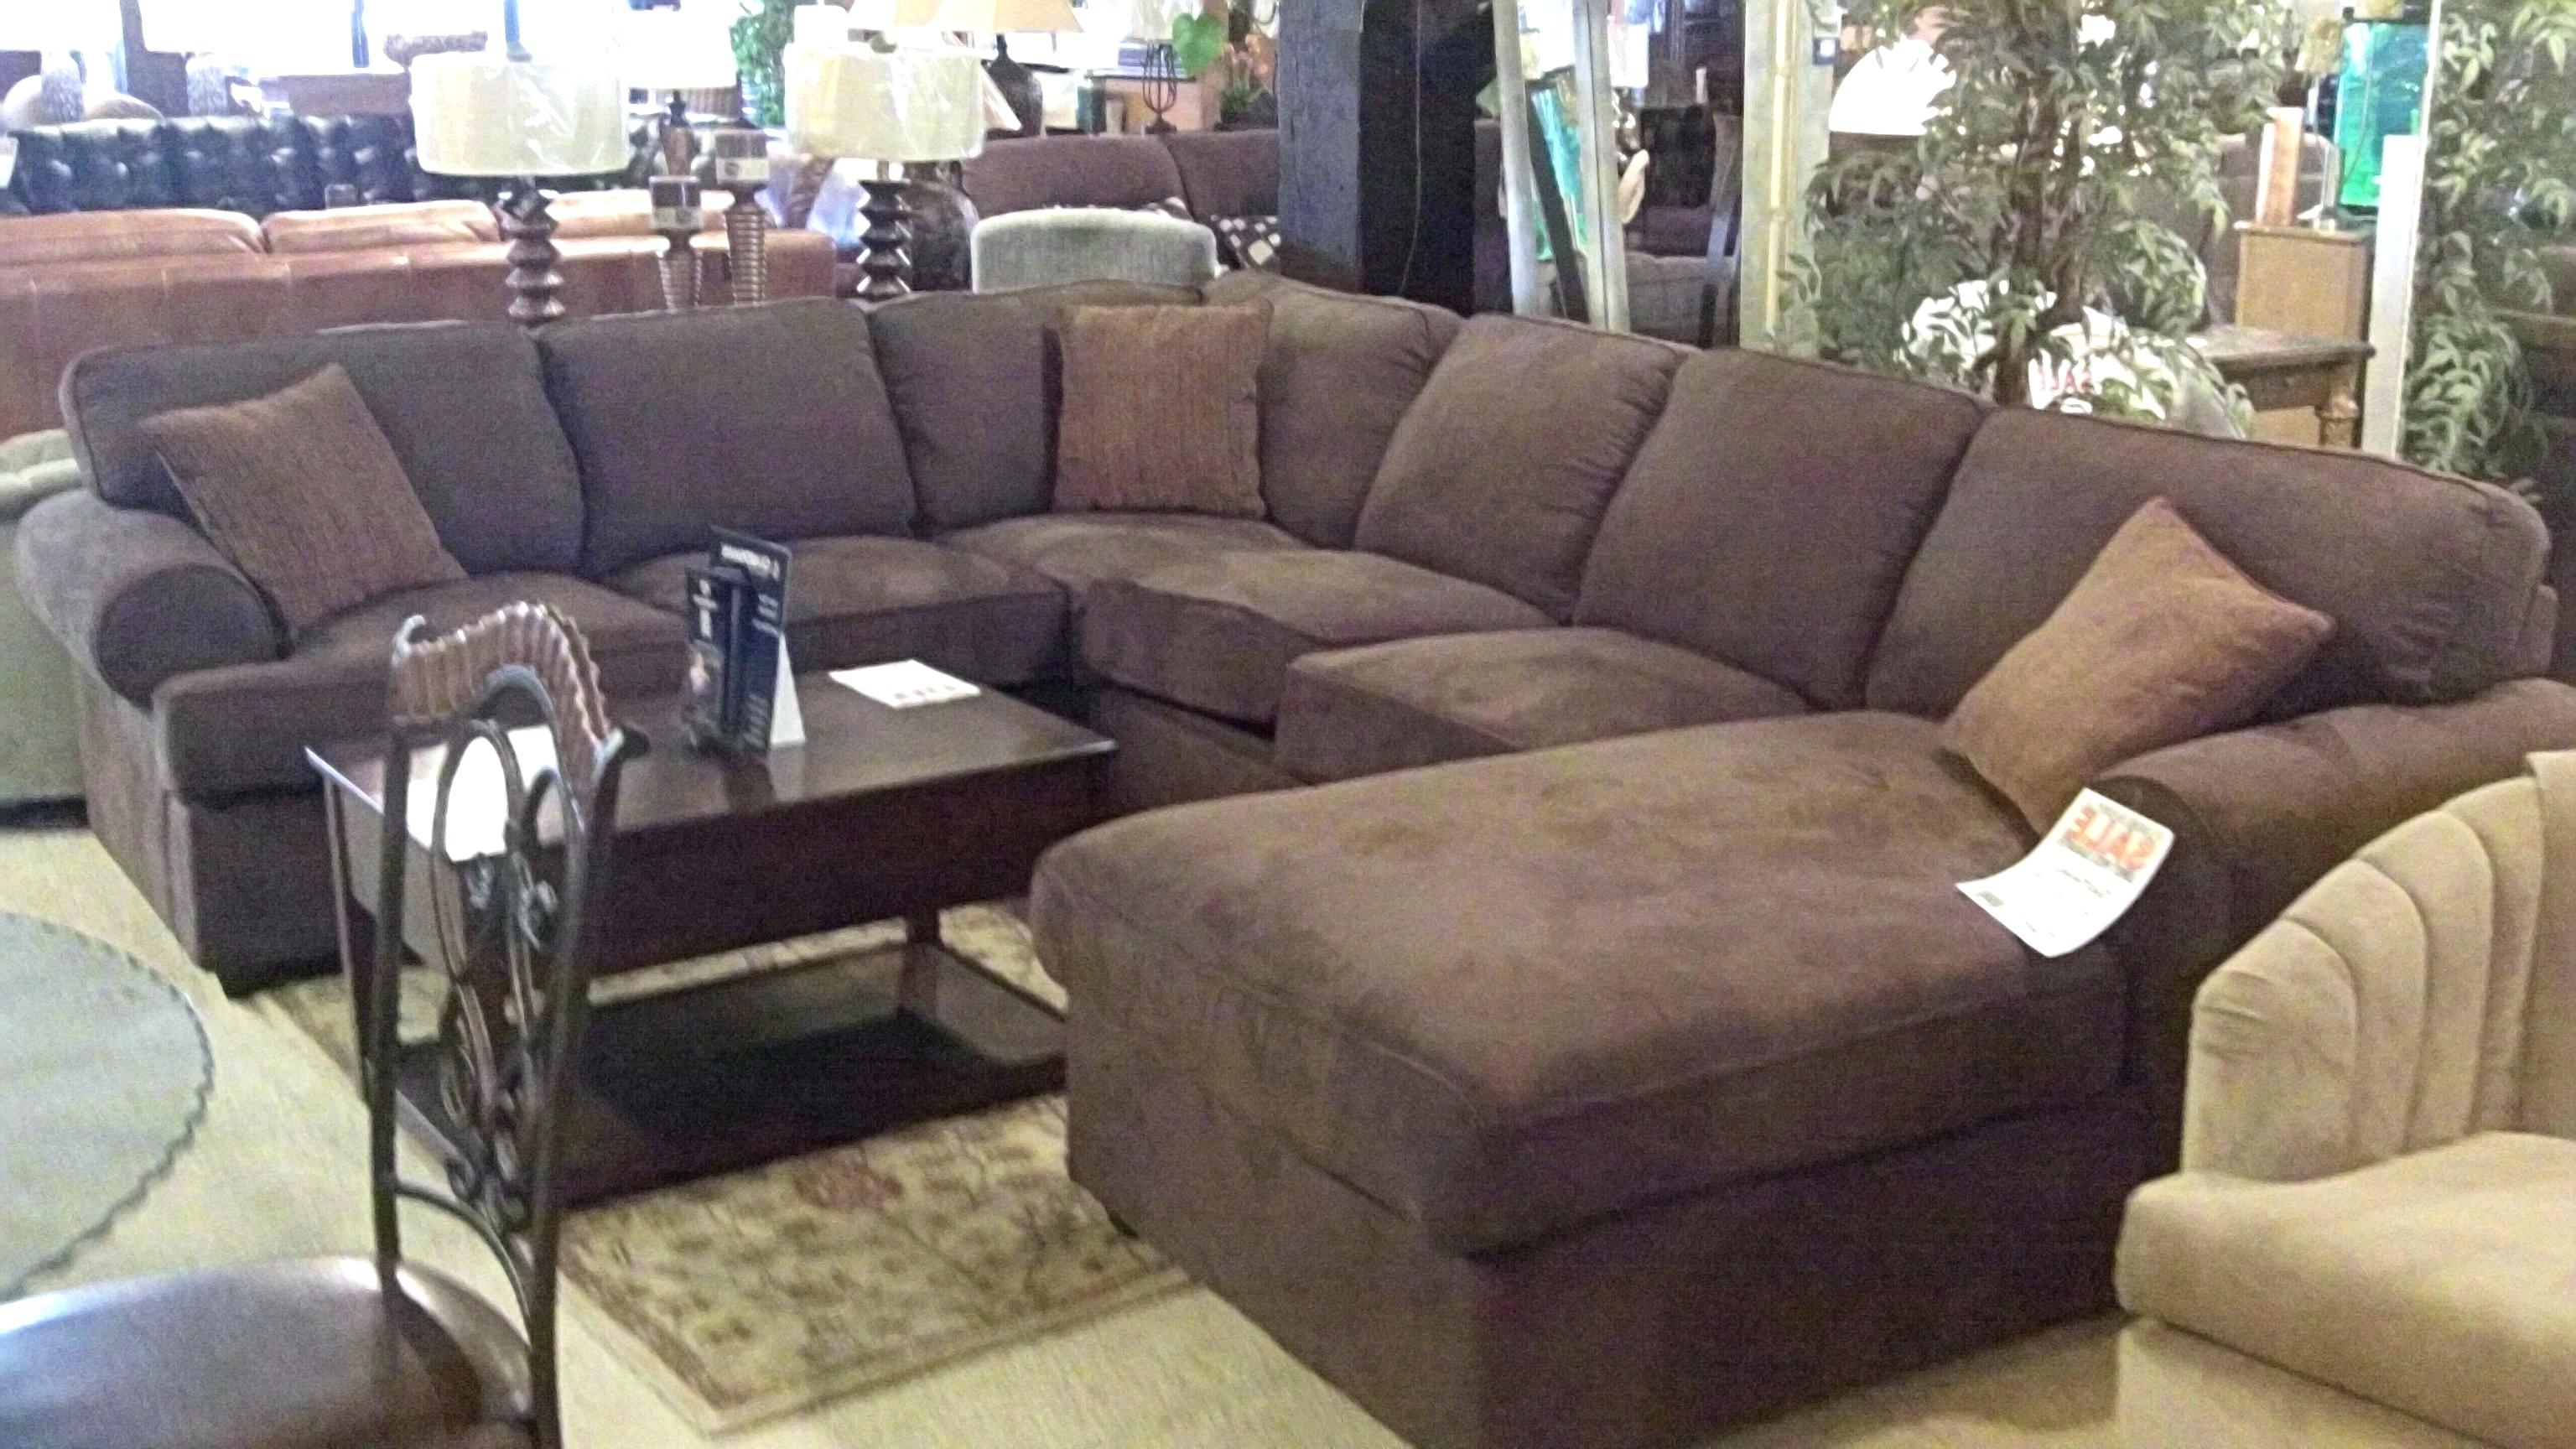 Widely Used Jcpenney Sectional Sofas Inside Jcpenney Couch – Ncgeconference (View 5 of 15)